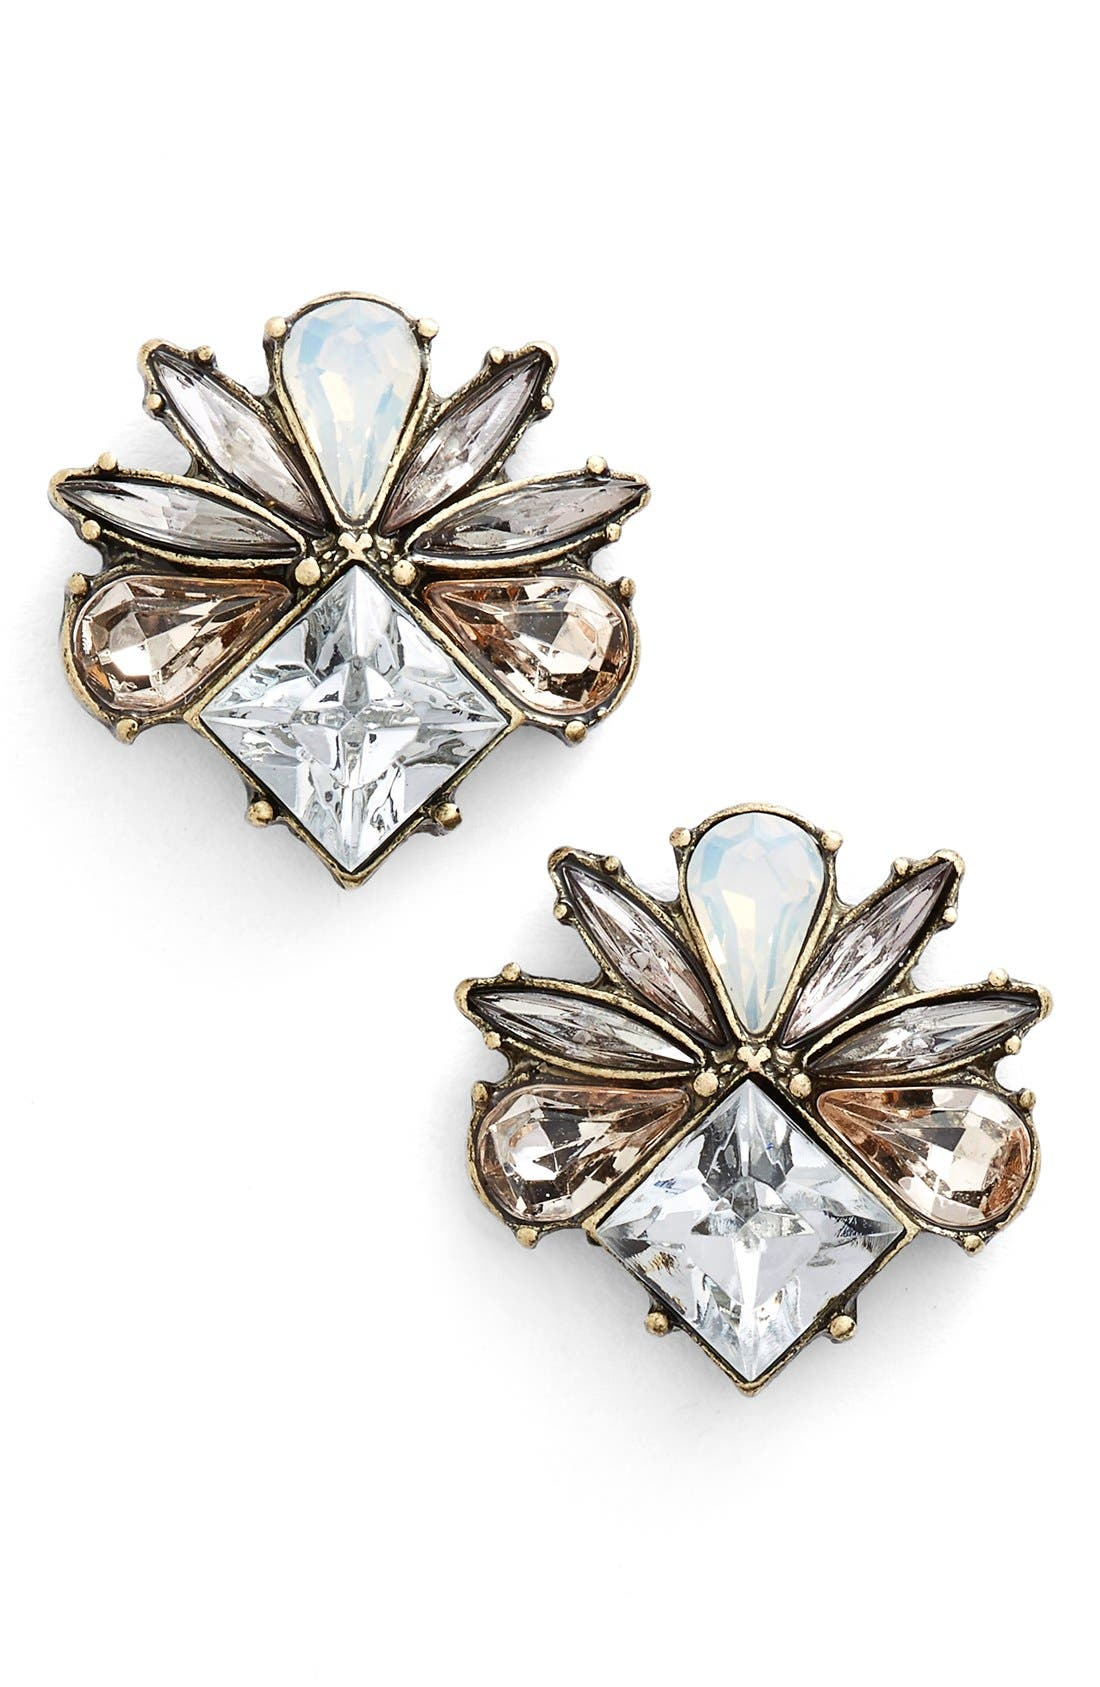 'Tundra' Stud Earrings,                             Main thumbnail 1, color,                             719